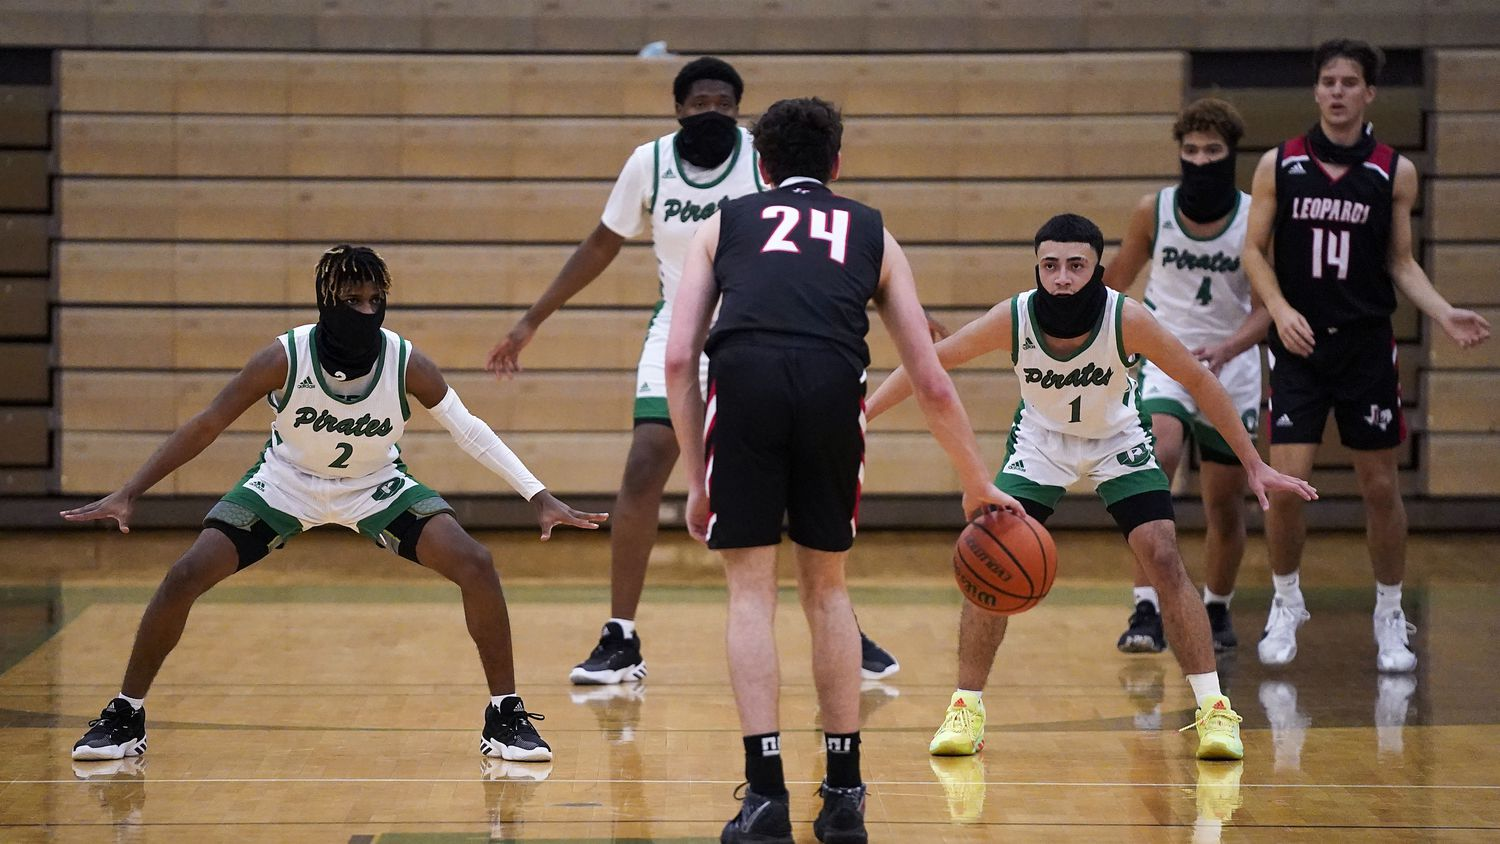 Mesquite Poteet guard Jeremiah Lynch (2), forward Tavarius Hamilton (back), guard Carlos Rodriguez (1) and guard Jeremiah Taylor (4) all wear face coverings as they set up on defense against Lovejoy guard Carson Holden (24) and forward Jeremy Van Riper (14) during a game on Tuesday, Nov. 17, 2020, in Mesquite.